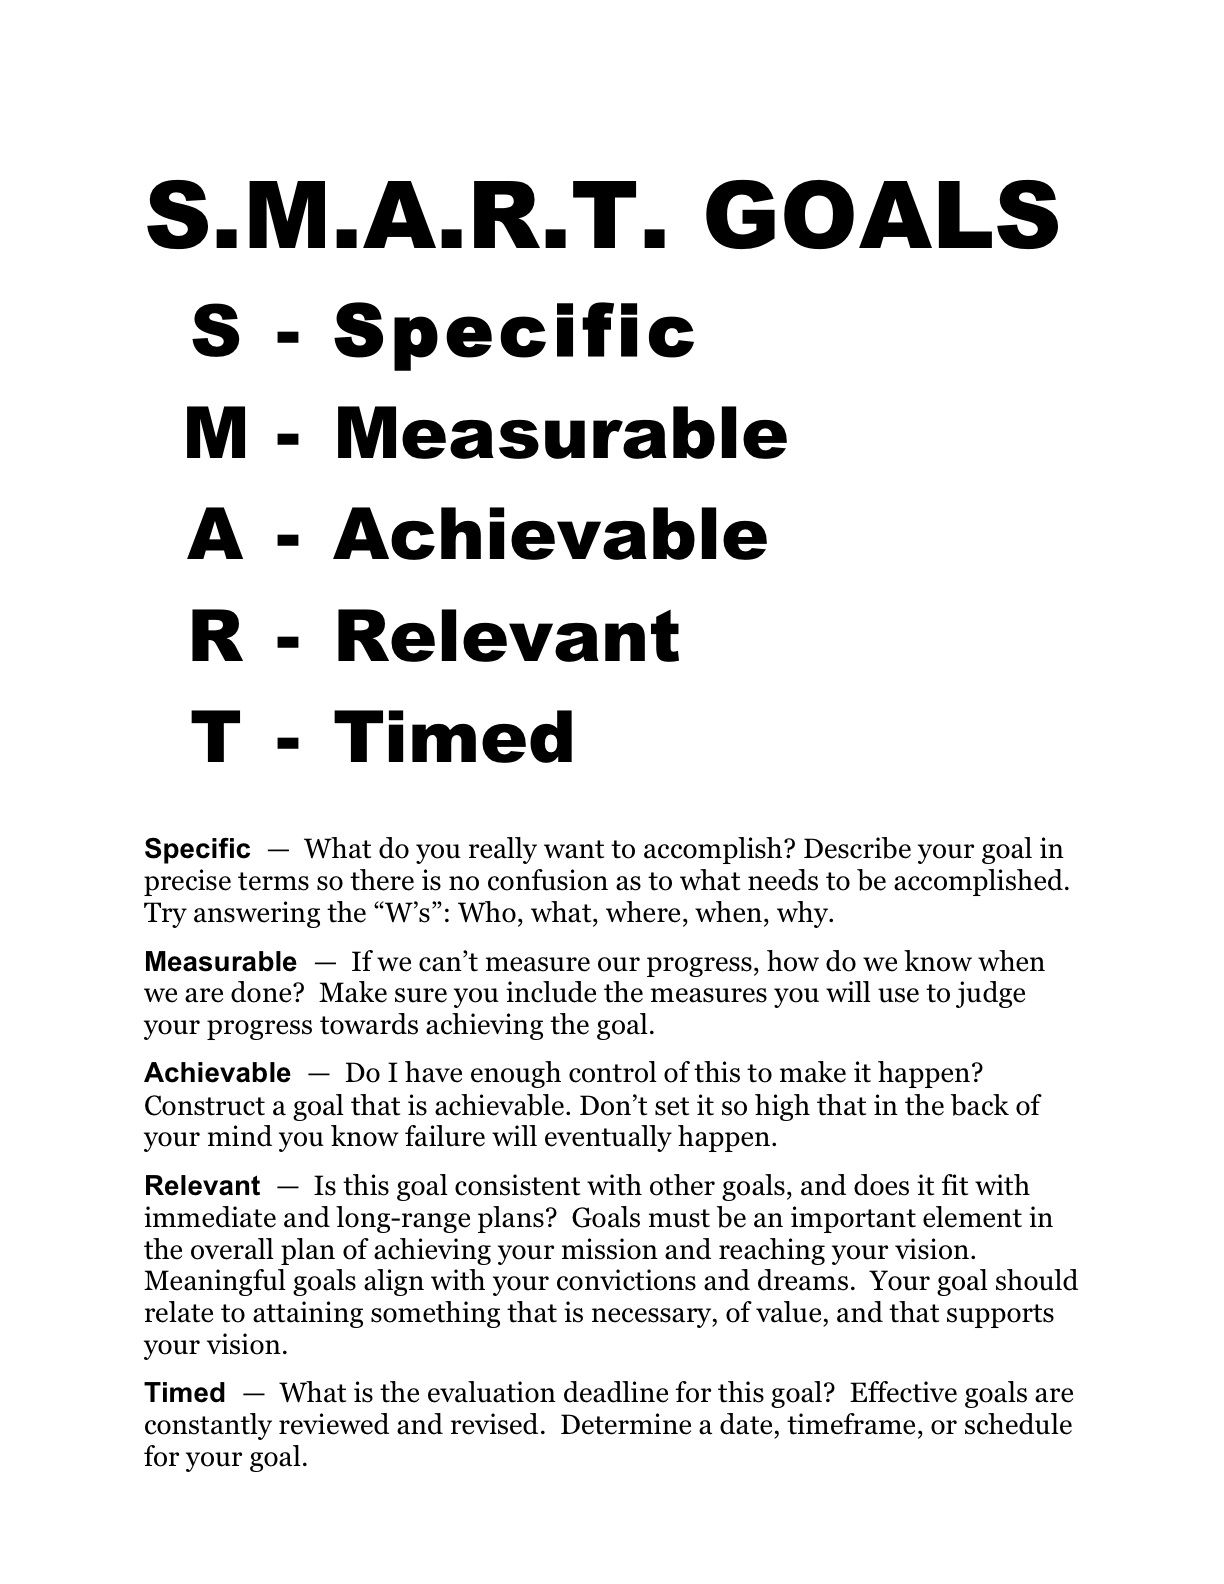 Printables Smart Goals Worksheet Pdf 1000 images about smart goals on pinterest template middle school music and new years resolutions